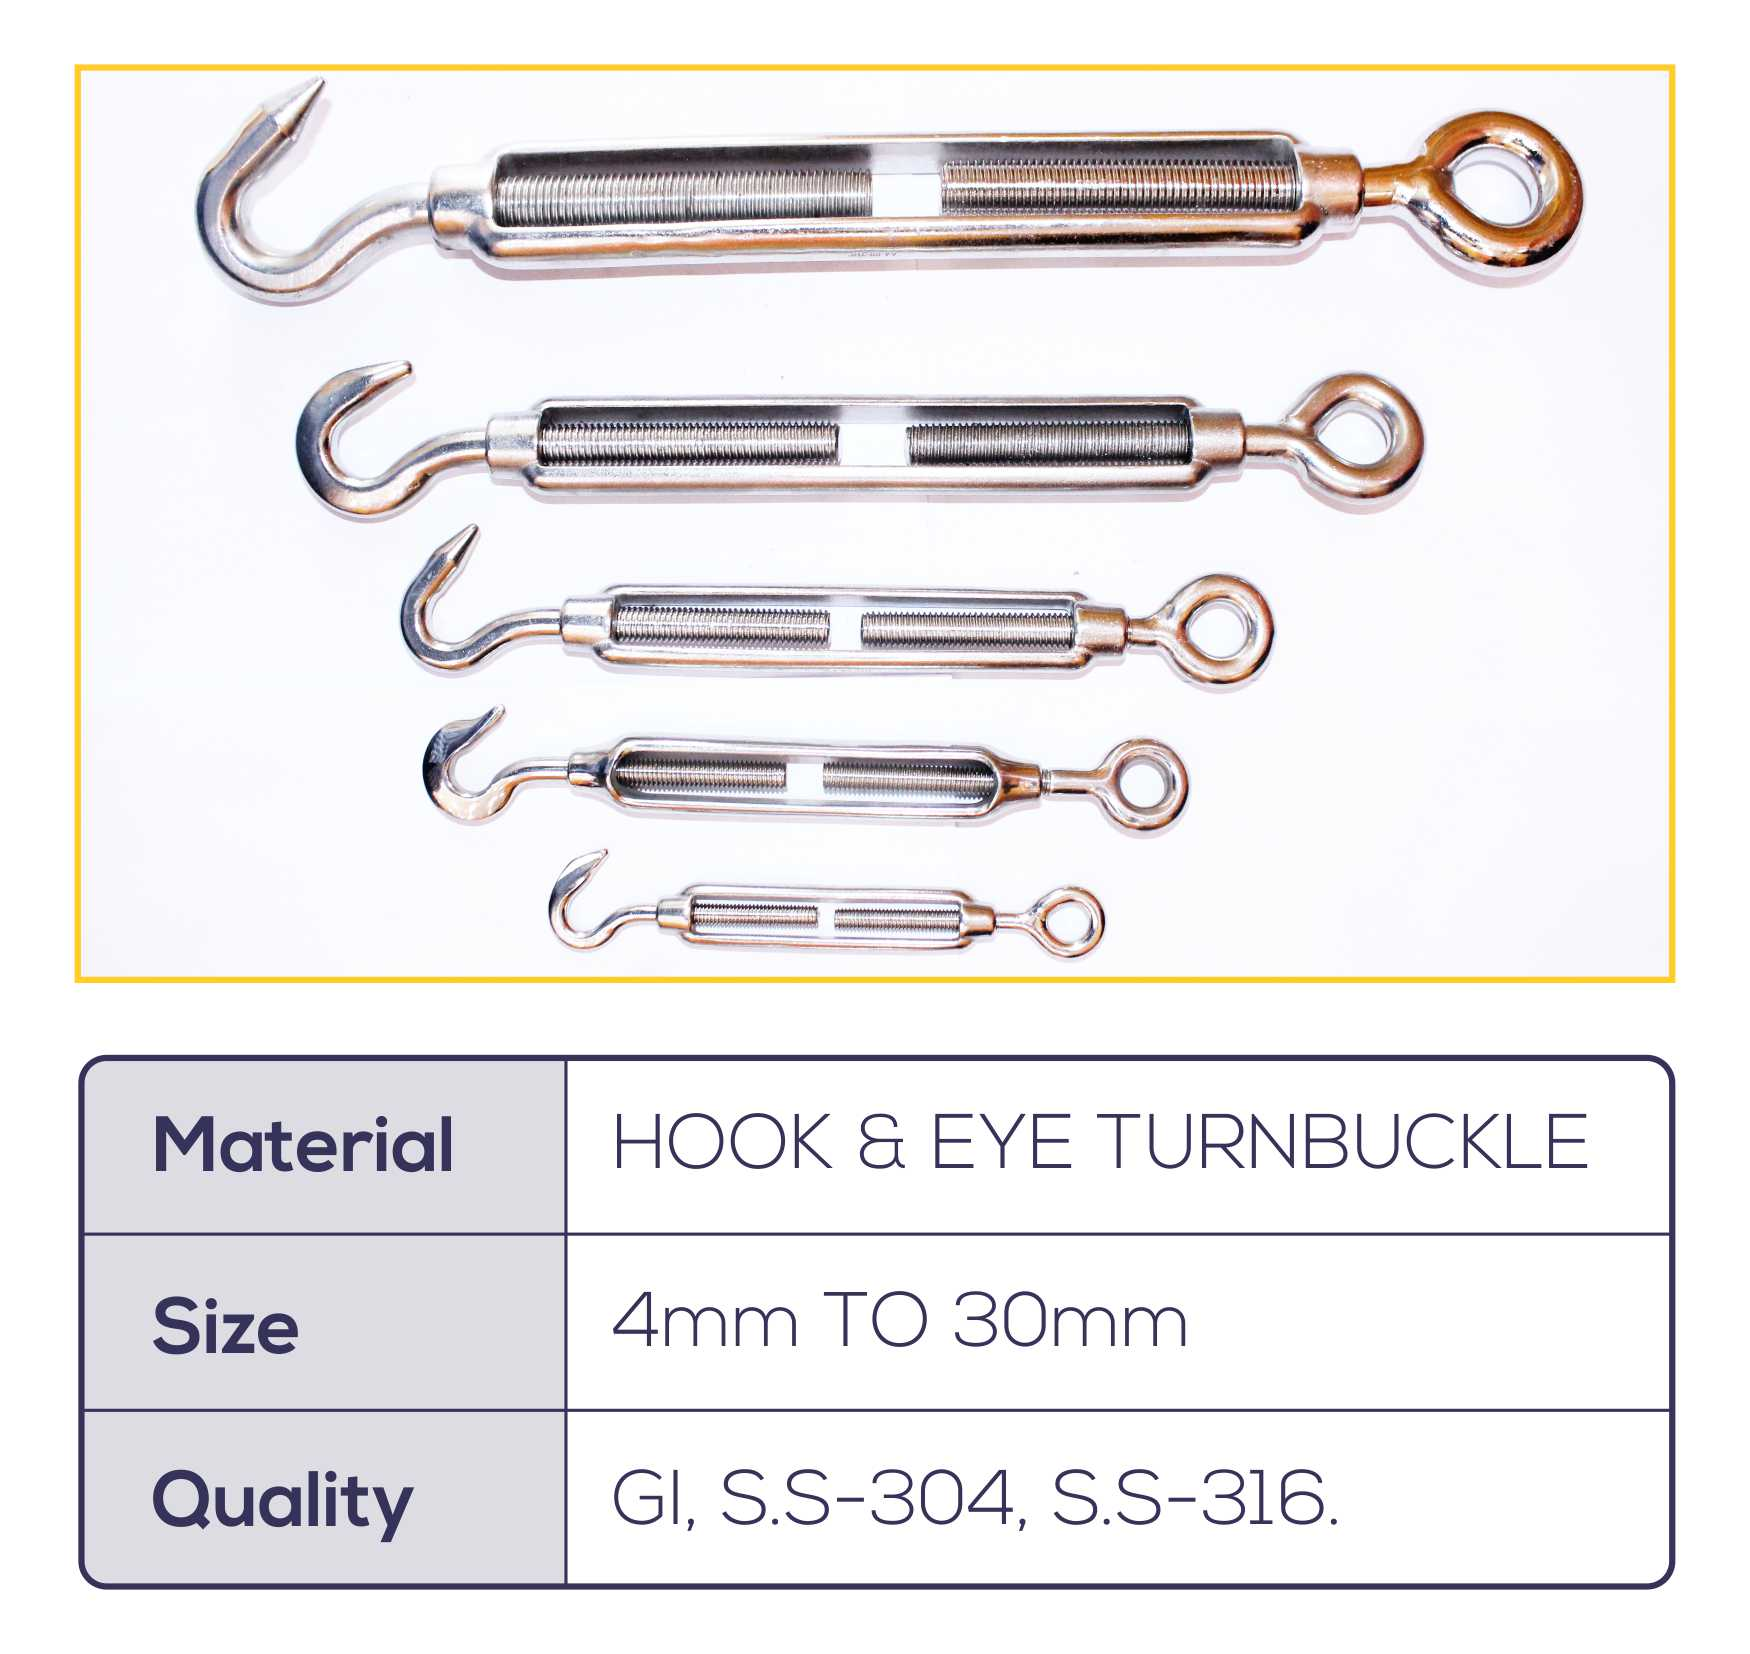 HOOK AND EYE TURNBUCKLE